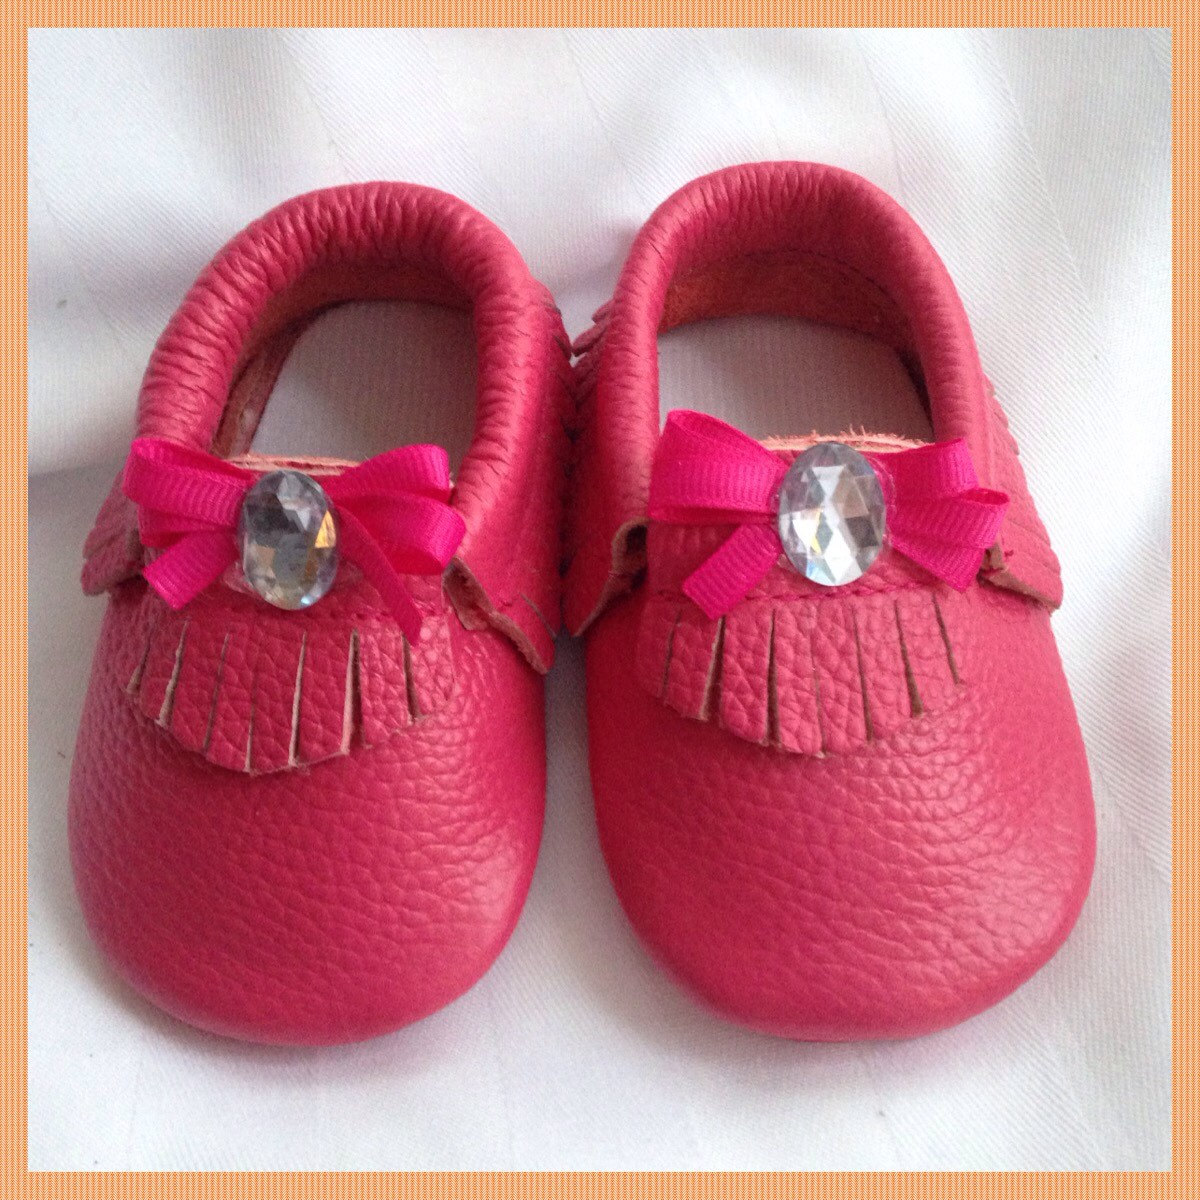 3f2b85a1fb12 Hot Pink Leather Moccasins Popular Trendy Baby Infant Size 0-6 Months Shoes  w